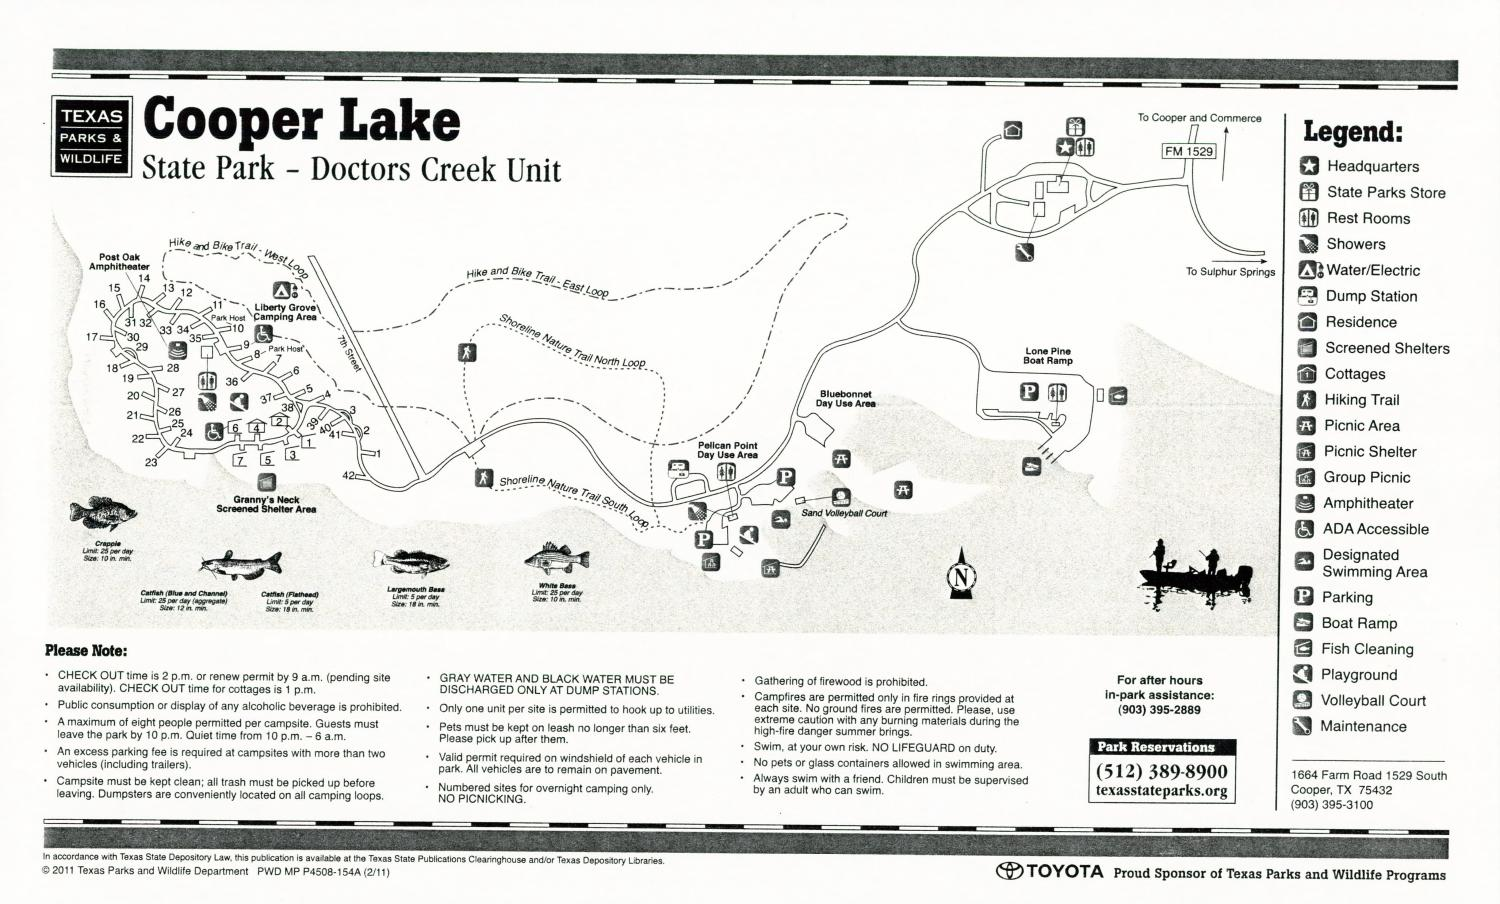 Cooper Lake State Park - Doctors Creek Unit, Map of the Doctors Creek Unit of the Cooper Lake State Park outlining hiking trails and highlighting activities, facilities, and other features such as bathrooms, lodgings, water/electric, etc. It also contains general information for the park and for the Texas Parks and Wildlife Department. Additionally, there are various advertisements, including information about the Texas State Parks Pass.,